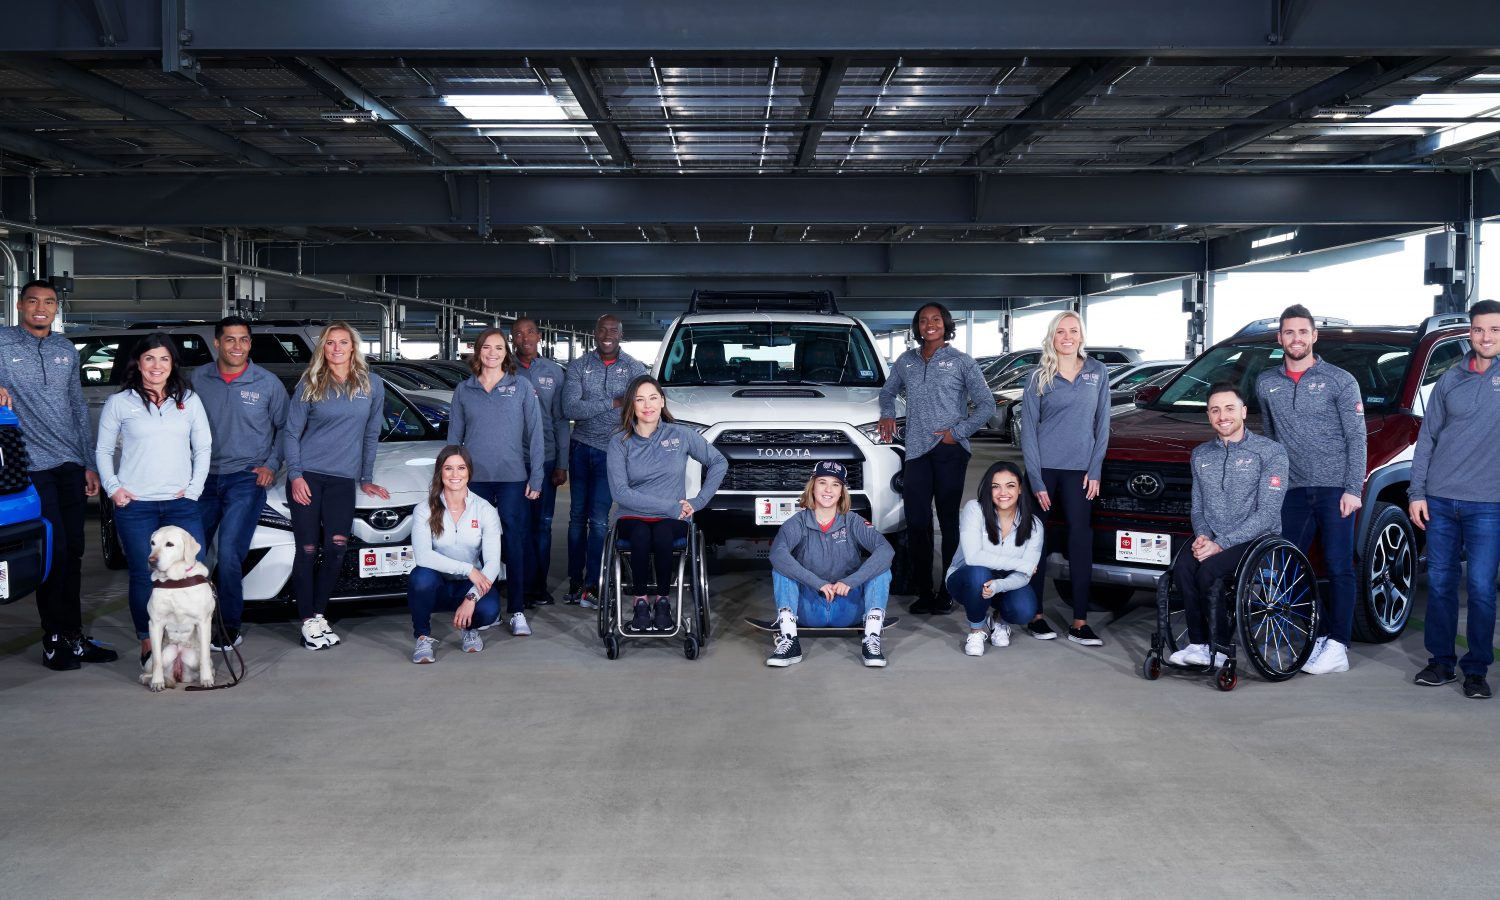 Team Toyota Athletes on the Power of the Possible